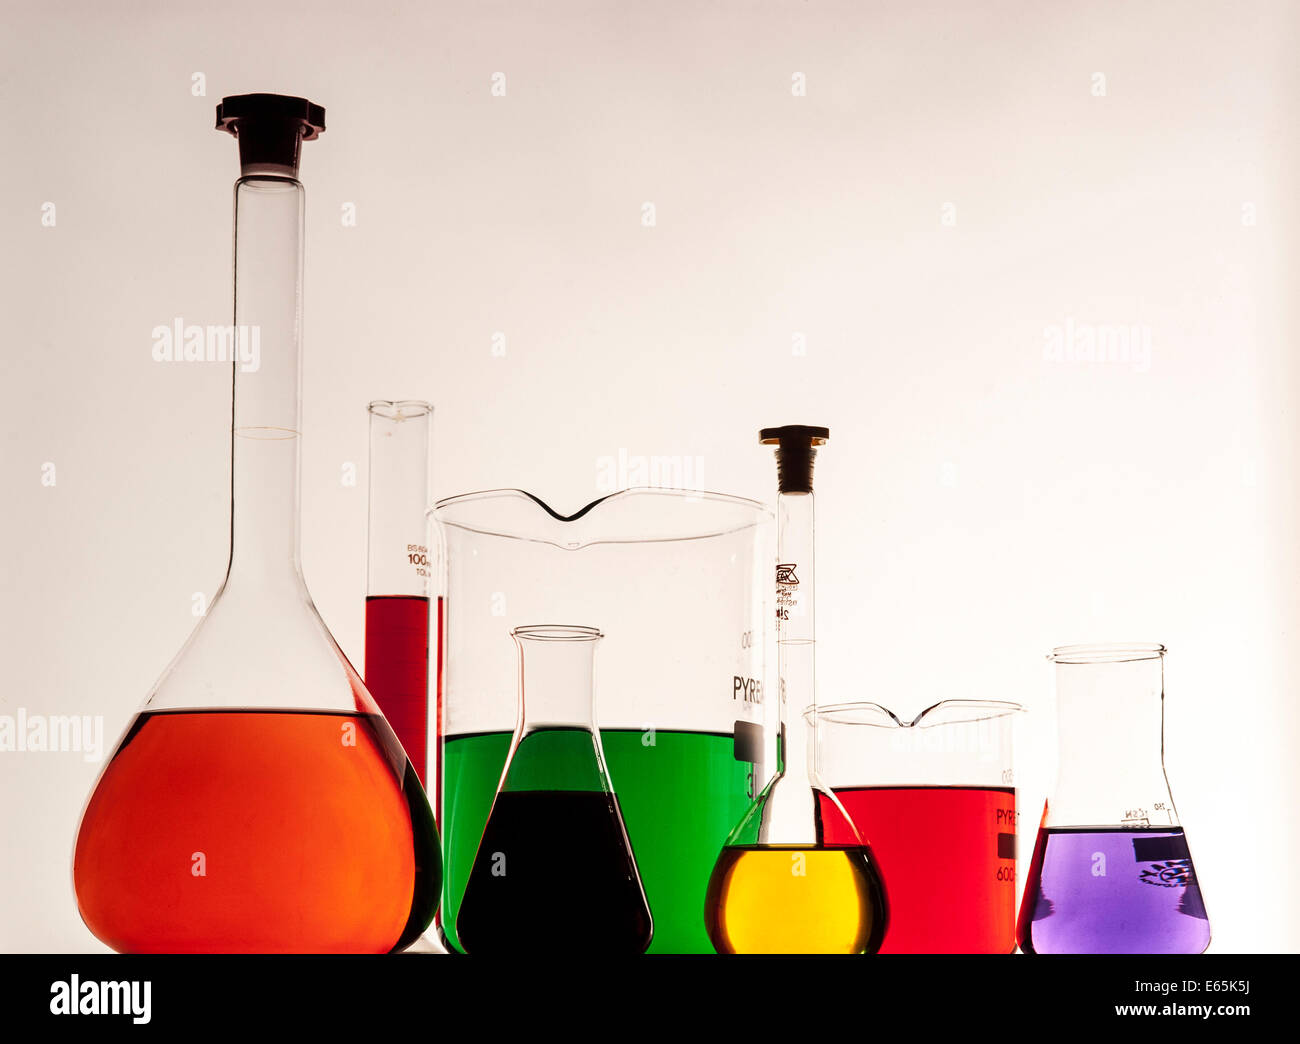 Chemical Flasks and Beakers with coloured fluids - Stock Image